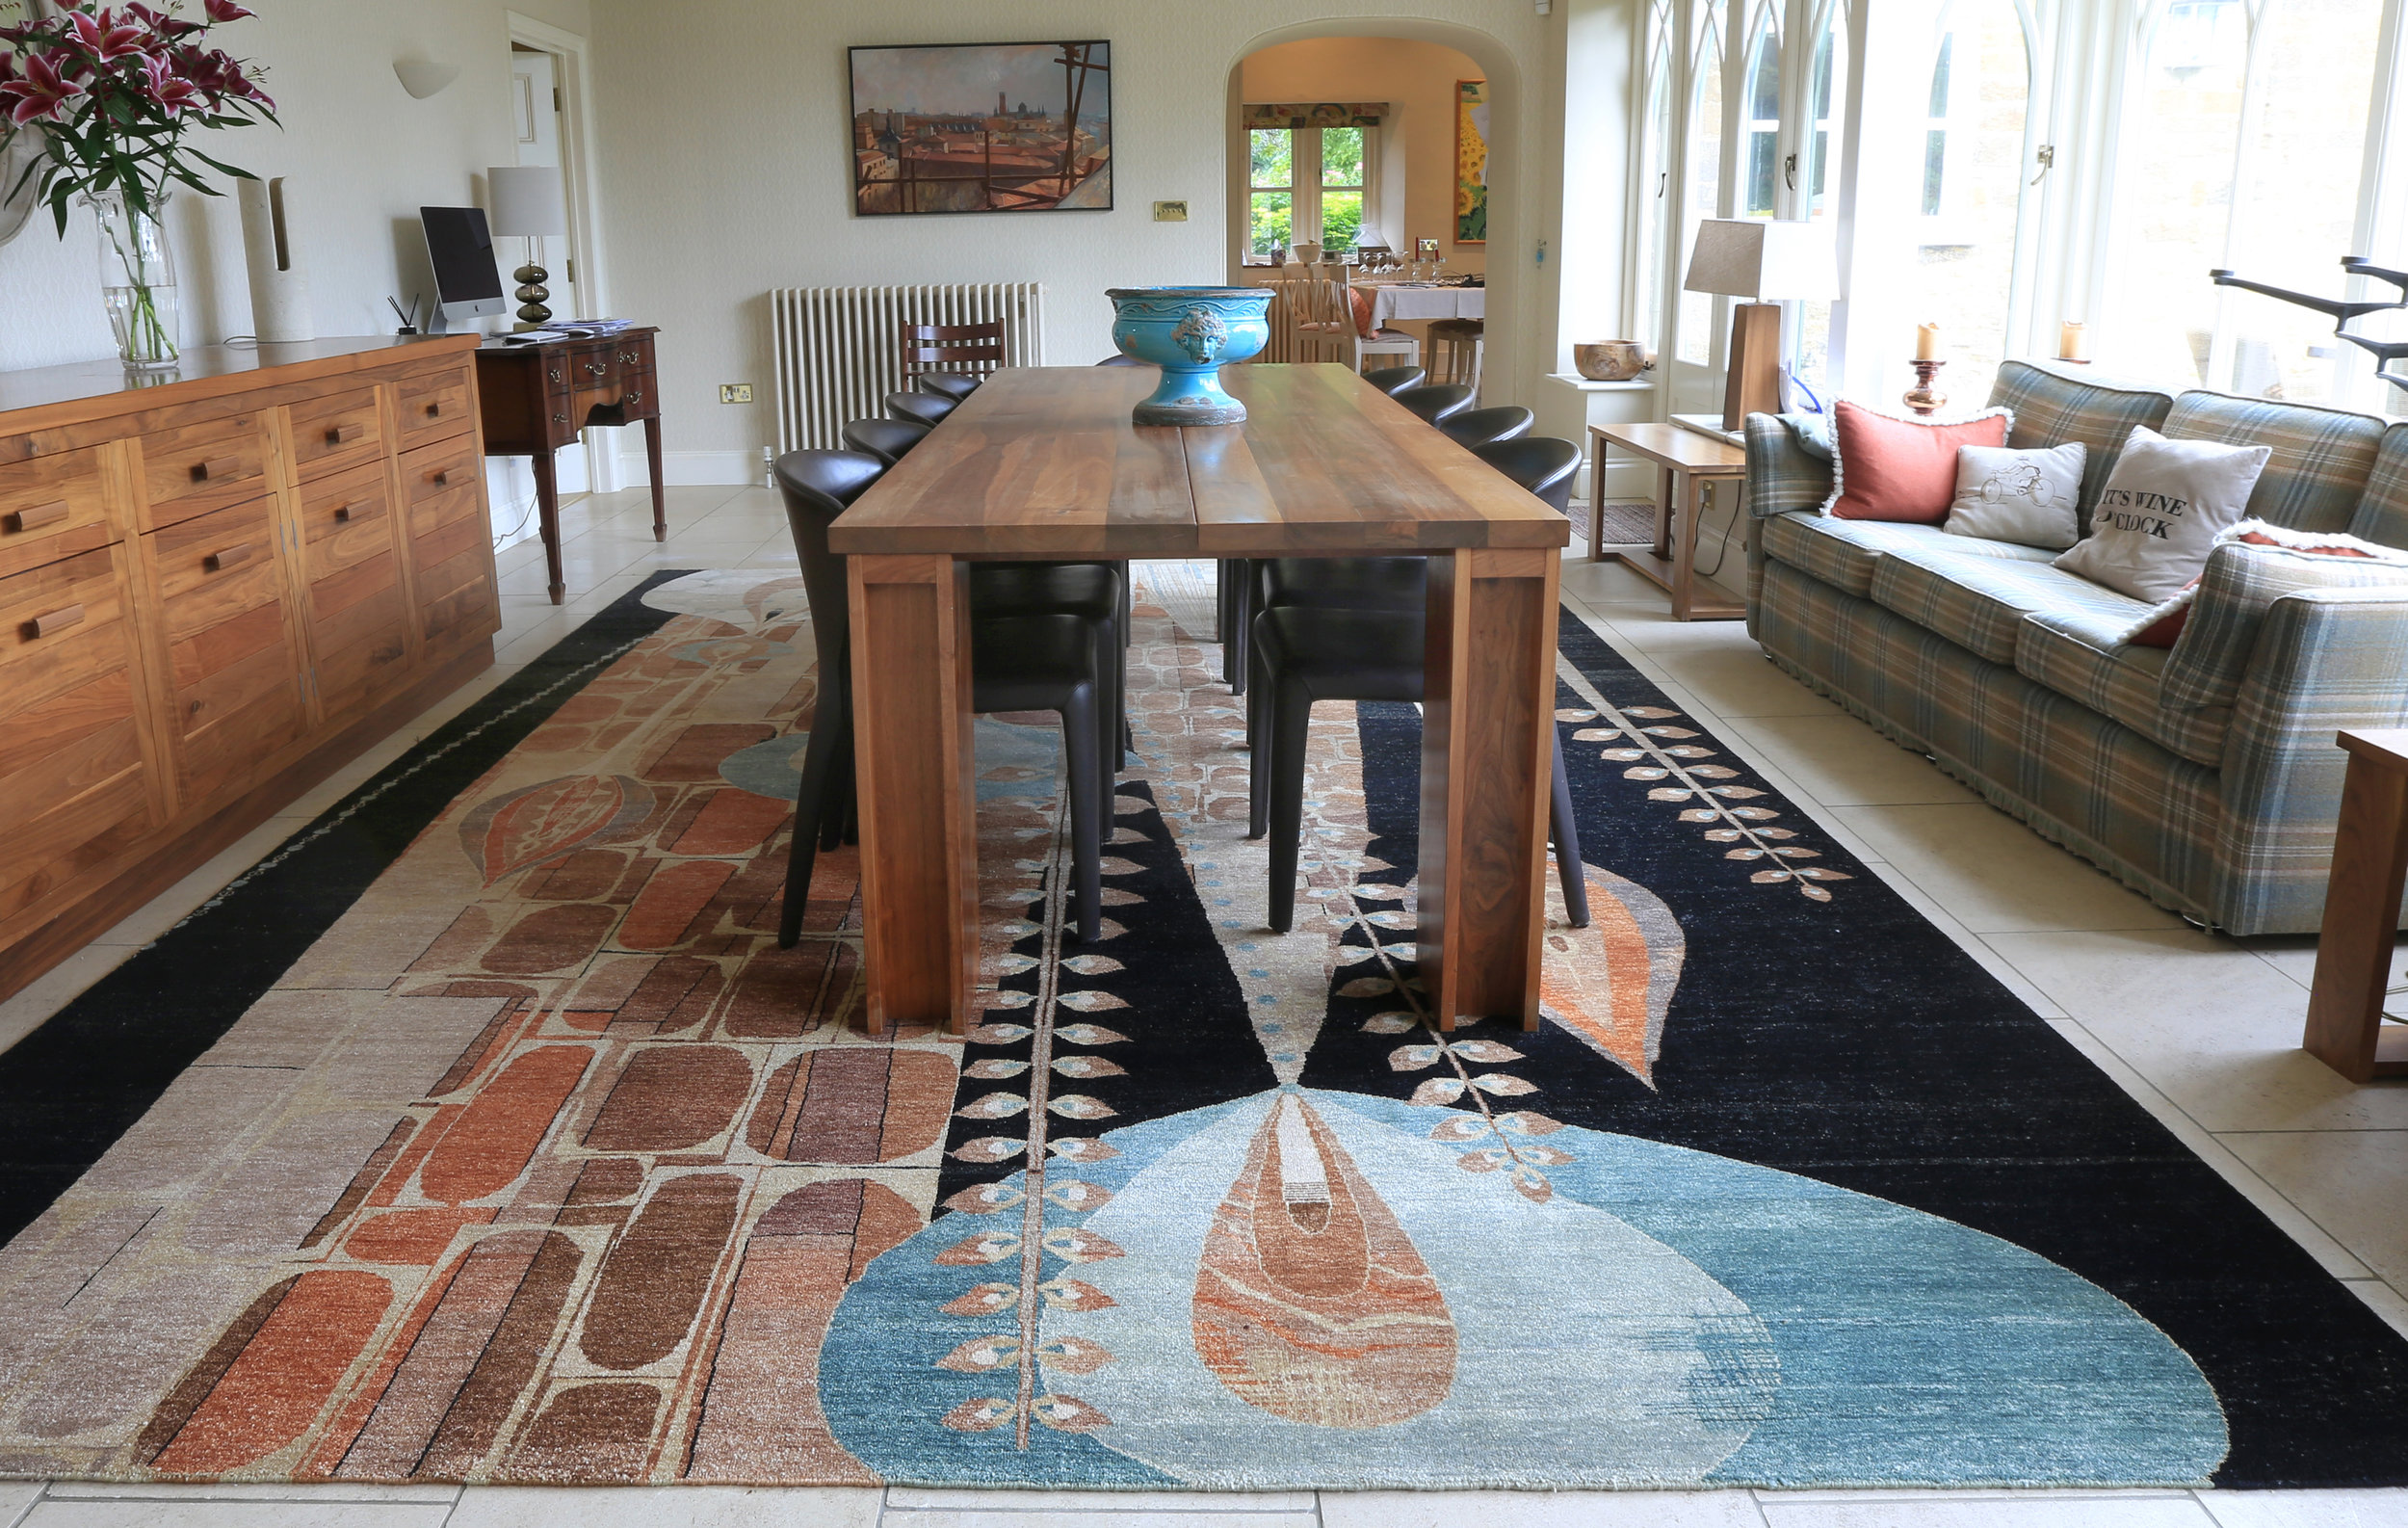 This Rex Ray Lombard rug comes from our Rex Ray collection. The collection originated from the American artist; Rex Ray. He was predominantly a graphic design artist using his retro-futuristic artwork to dictate his own genre of art through his unique designs. After his death in 2015, a tribute to his work was formulated by putting his designs into the form of wool.    Each Rex Ray rug is hand knotted by master weavers in Jaipur, India.